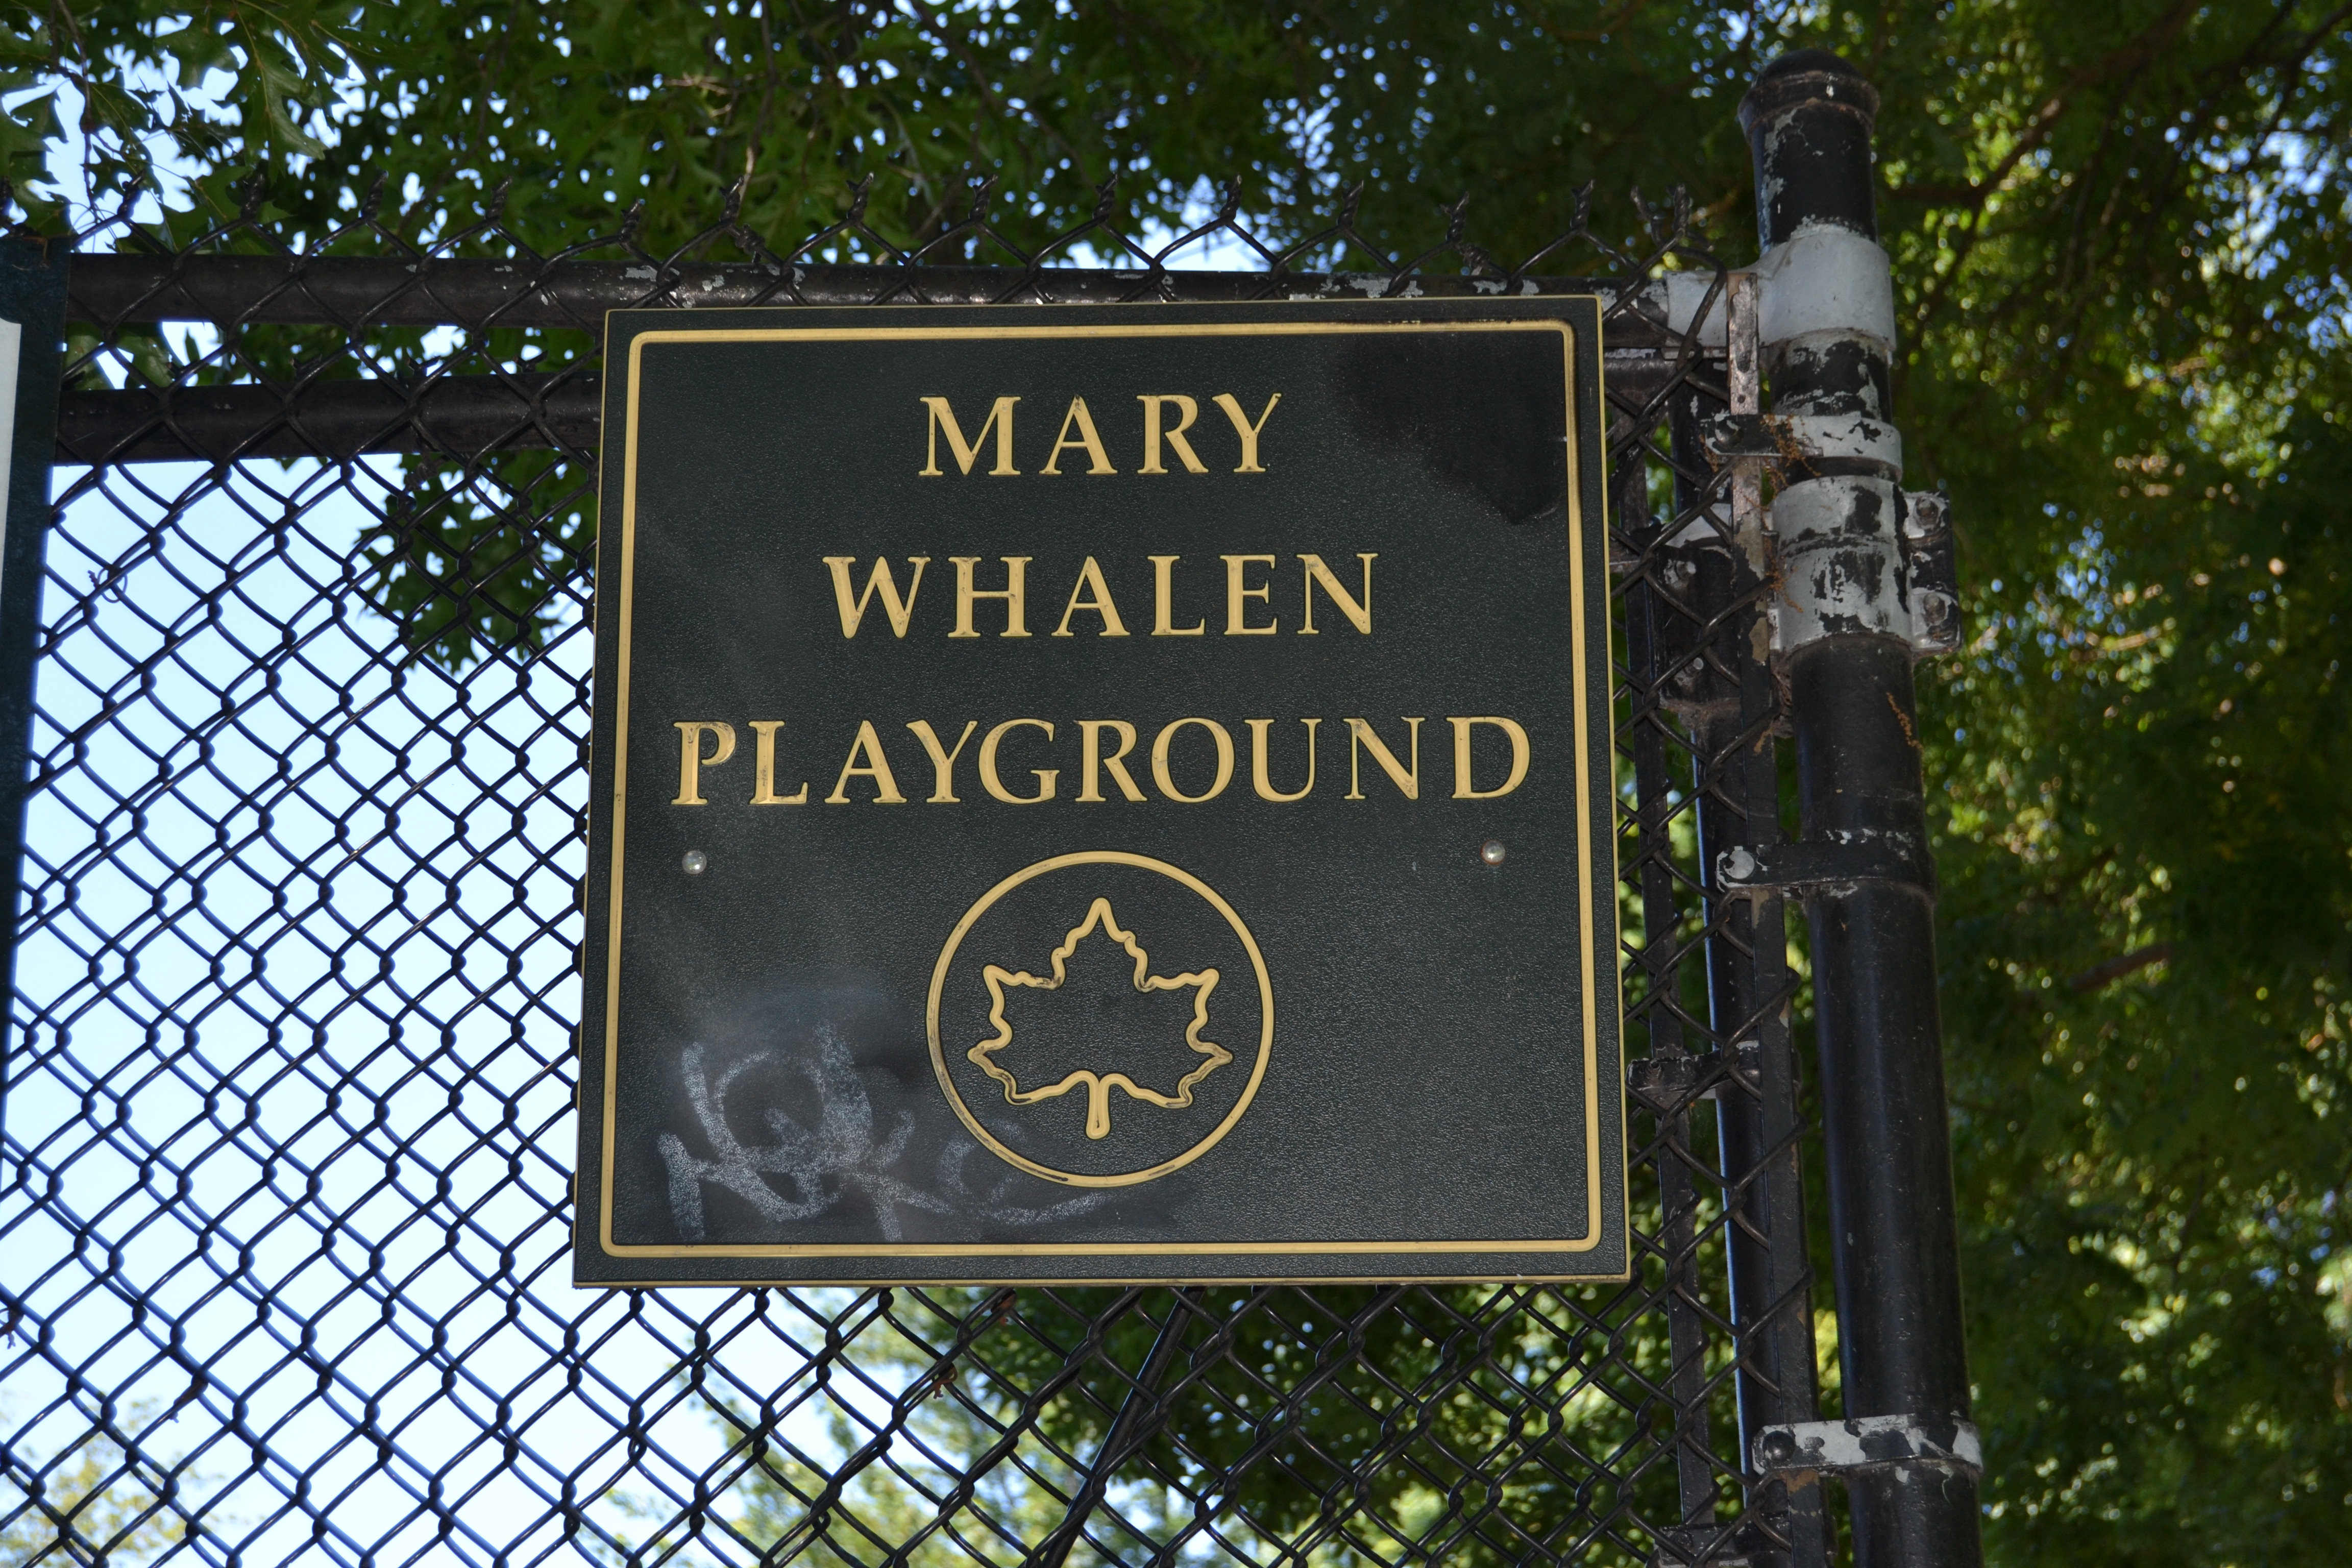 Upgrades coming for Woodhaven's Mary Whalen Playground